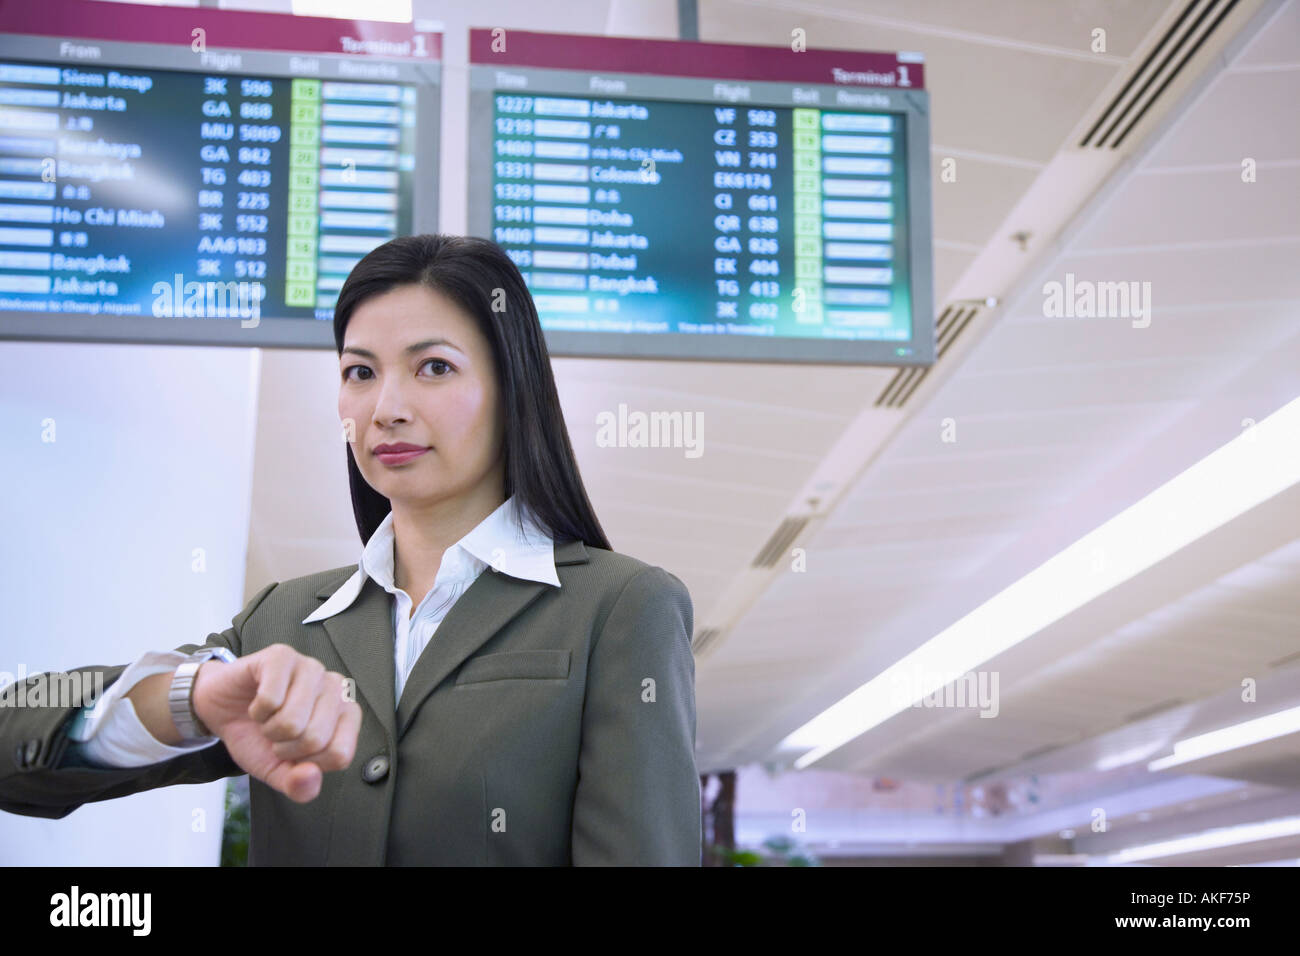 Portrait of a businesswoman in front of an airport departure board - Stock Image